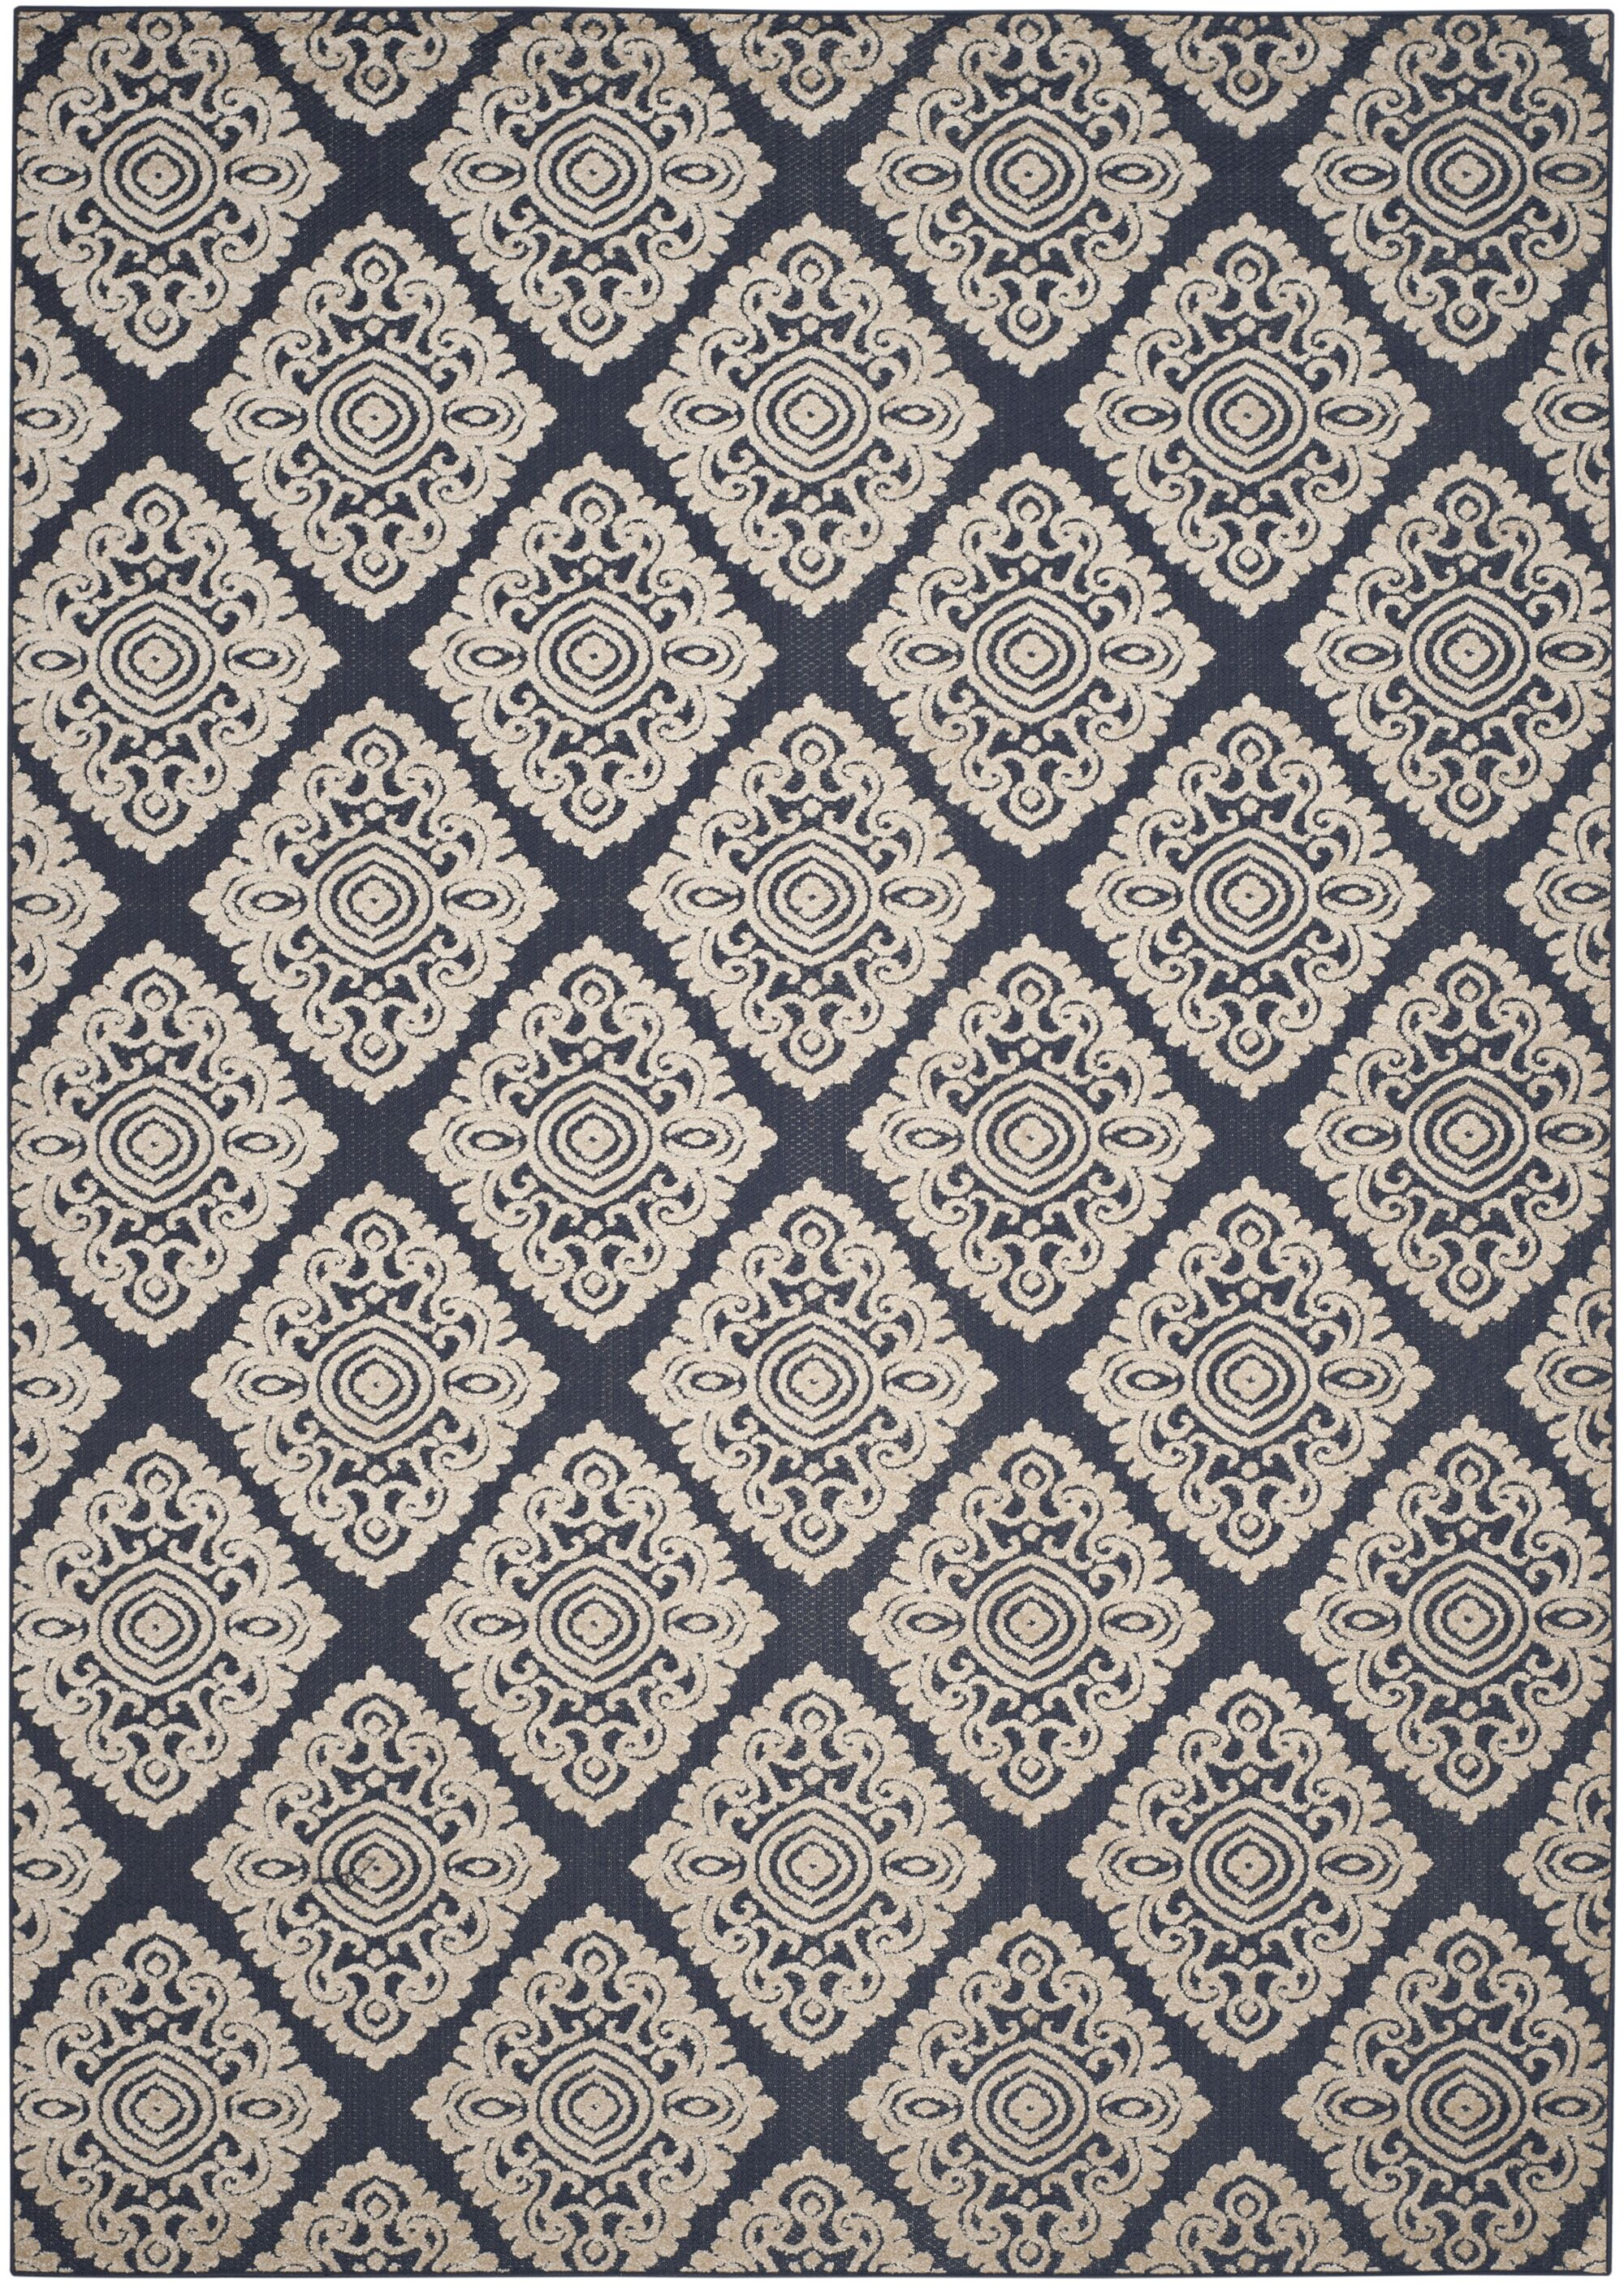 Mannox Cream/Navy Blue Indoor/Outdoor Area Rug Rug Size: Rectangle 8' x 11'2